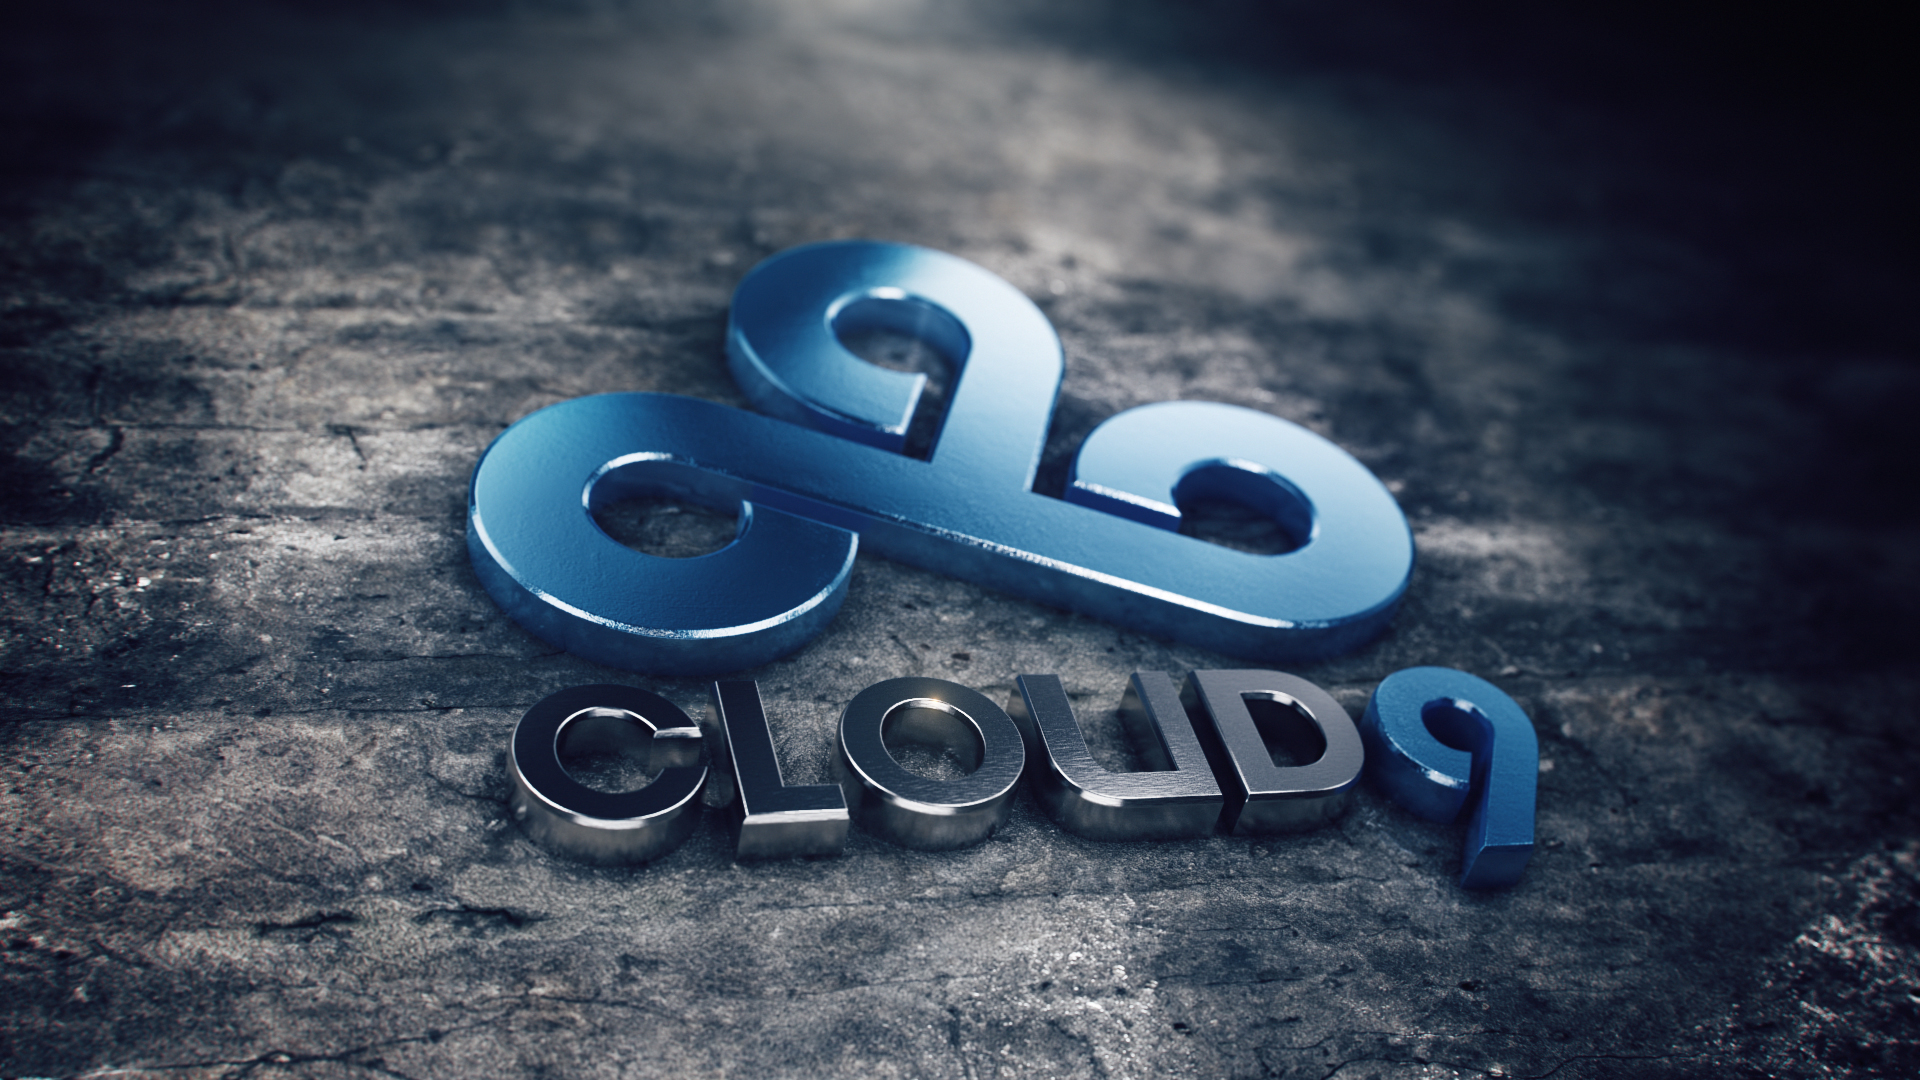 cloud9 logo 3d csgo wallpapers and backgrounds